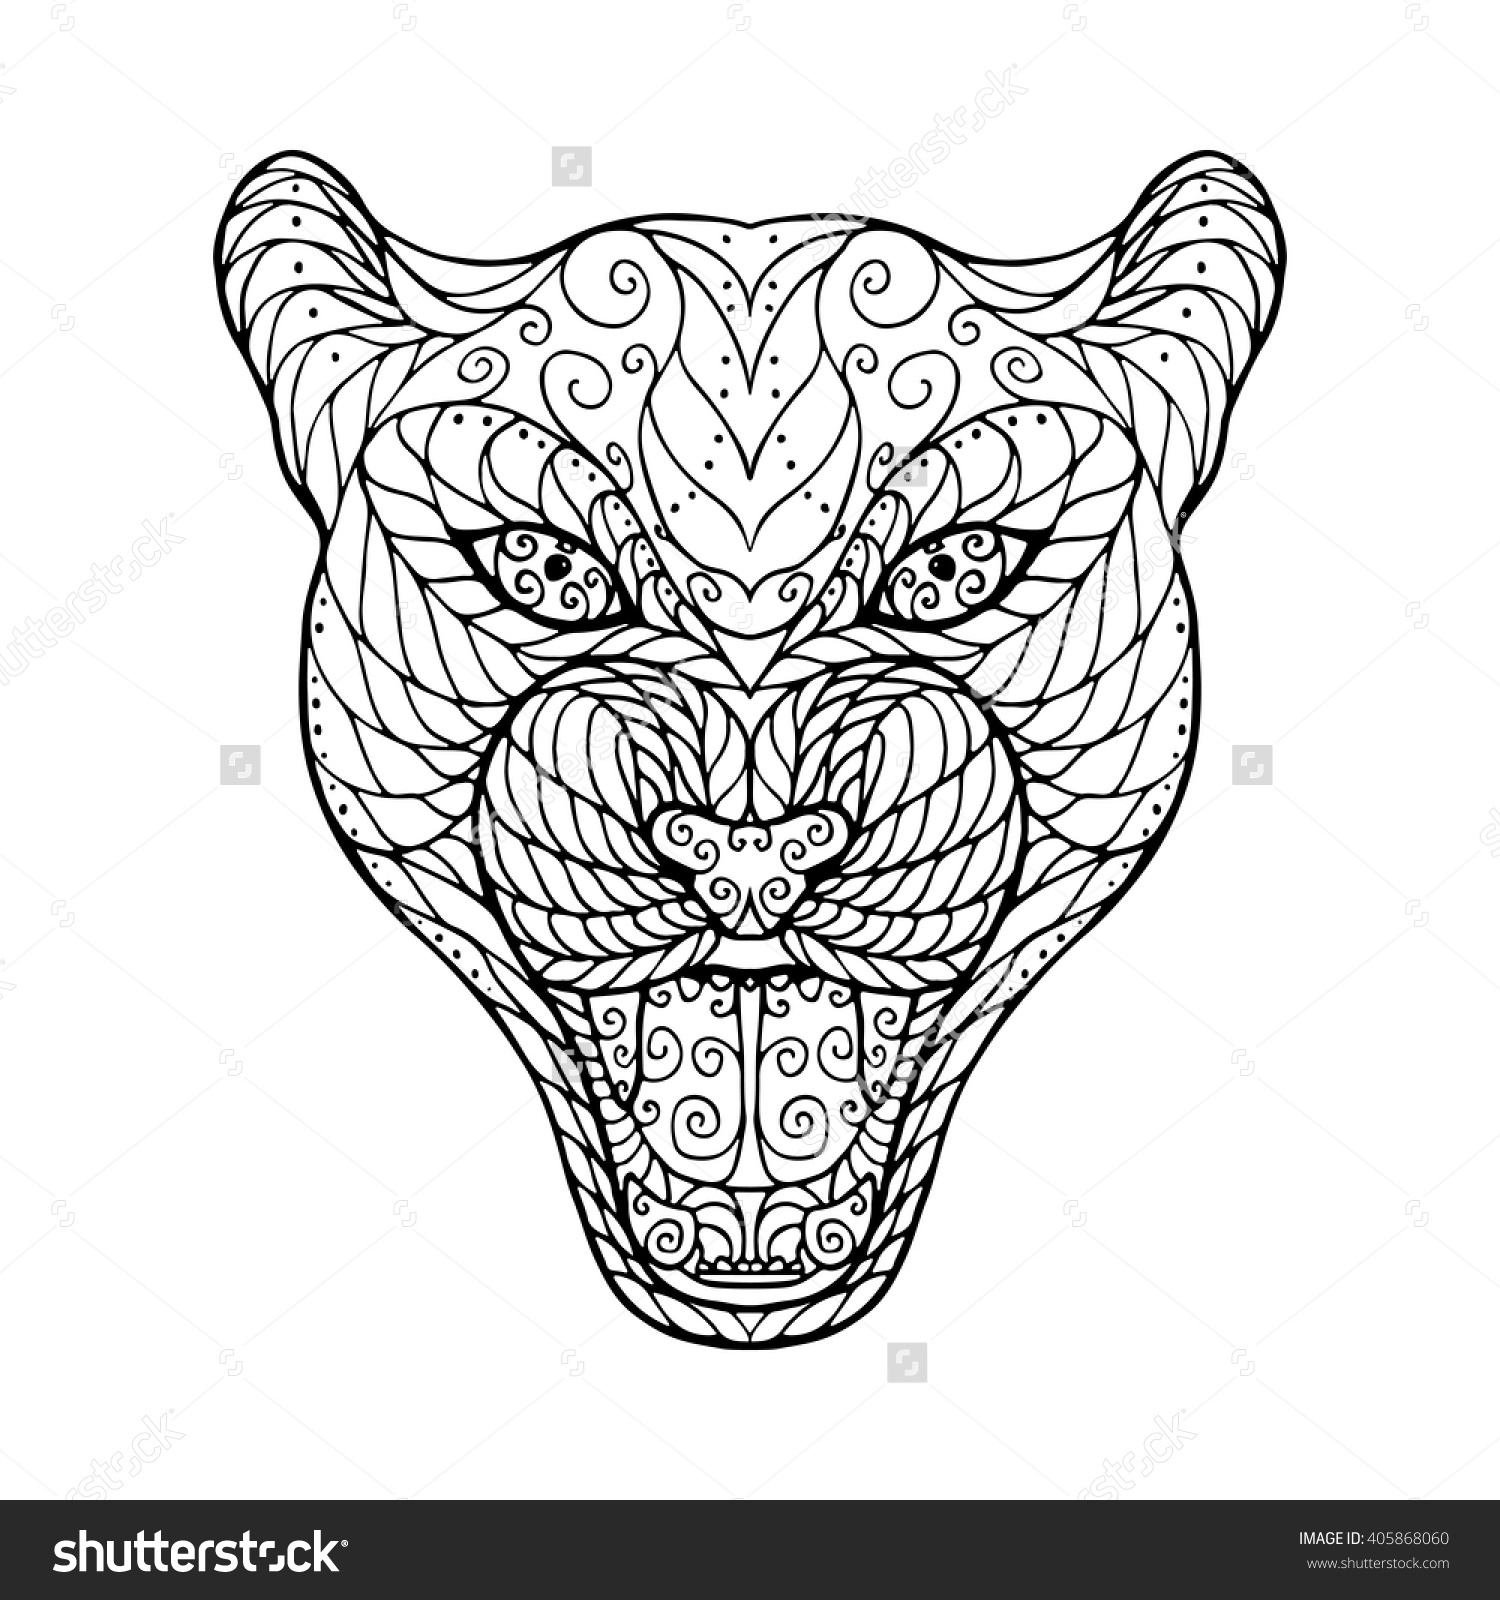 1500x1600 Zen Tangle Head Of Jaguar, For Adult Anti Stress Coloring Page